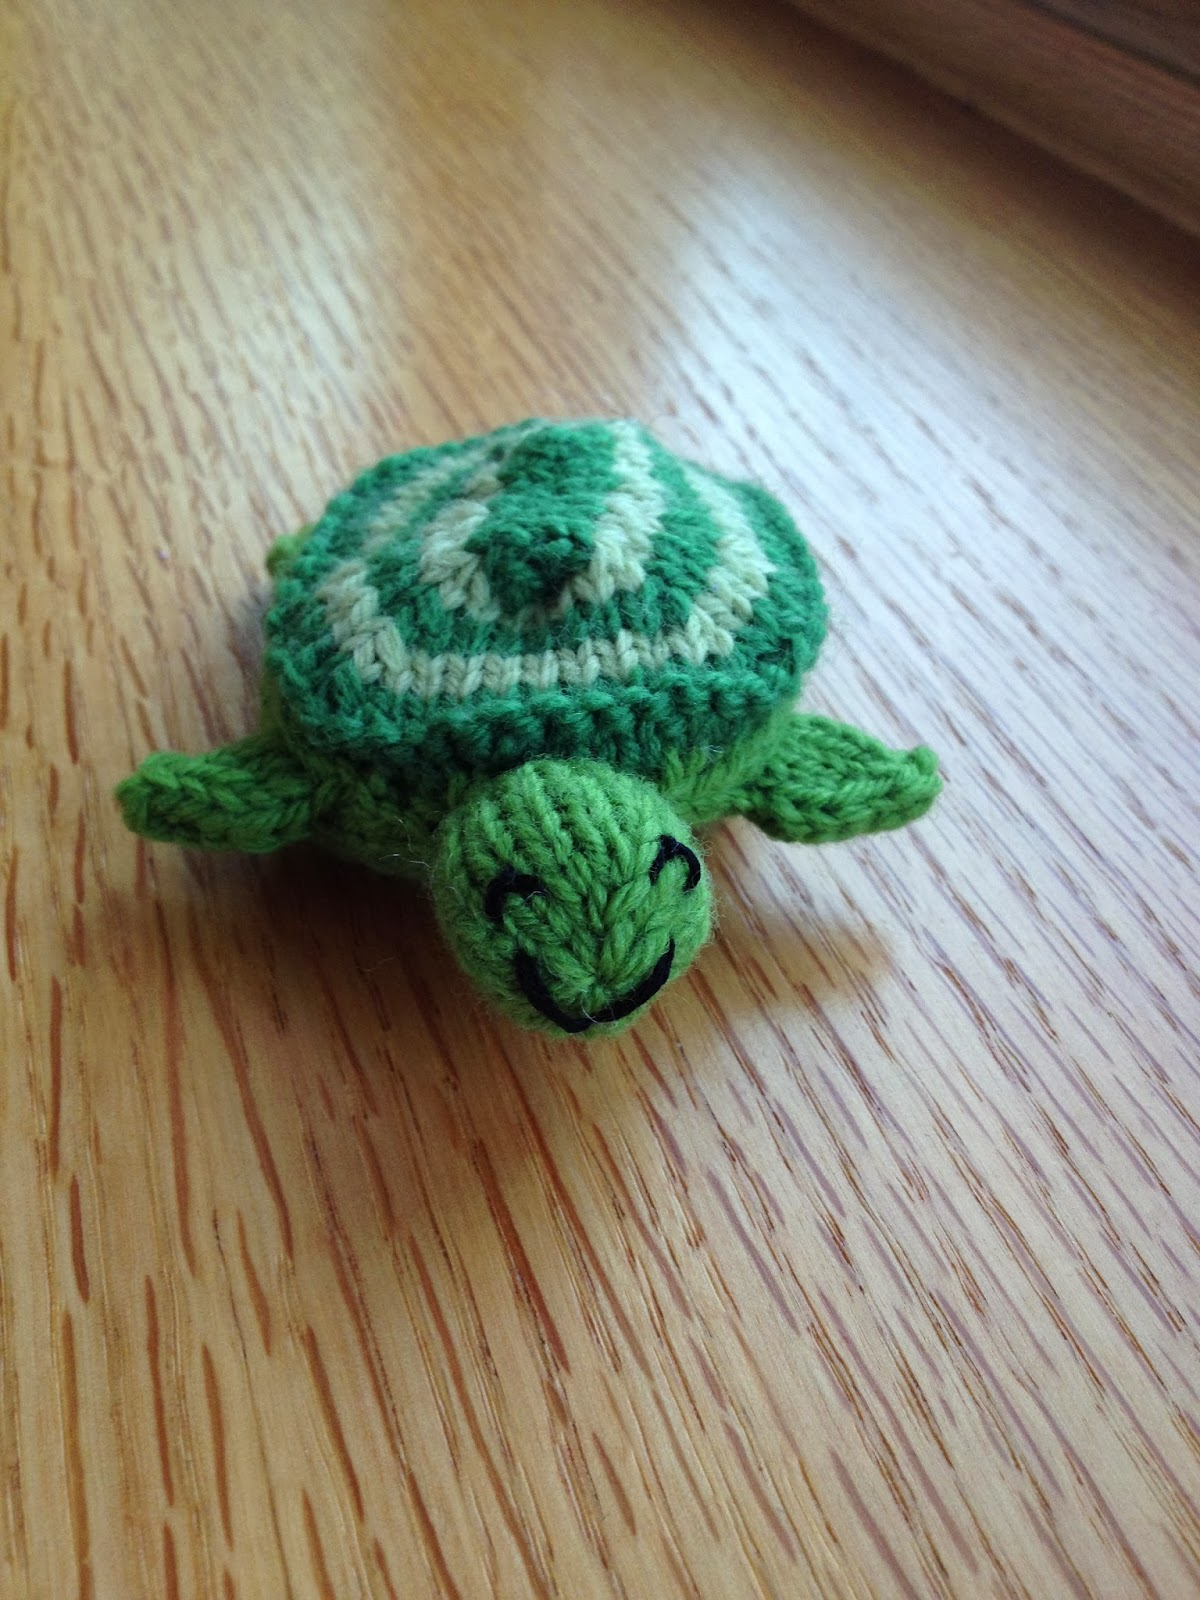 Tortoise Clothes Knitting Pattern : Susan b anderson freebies